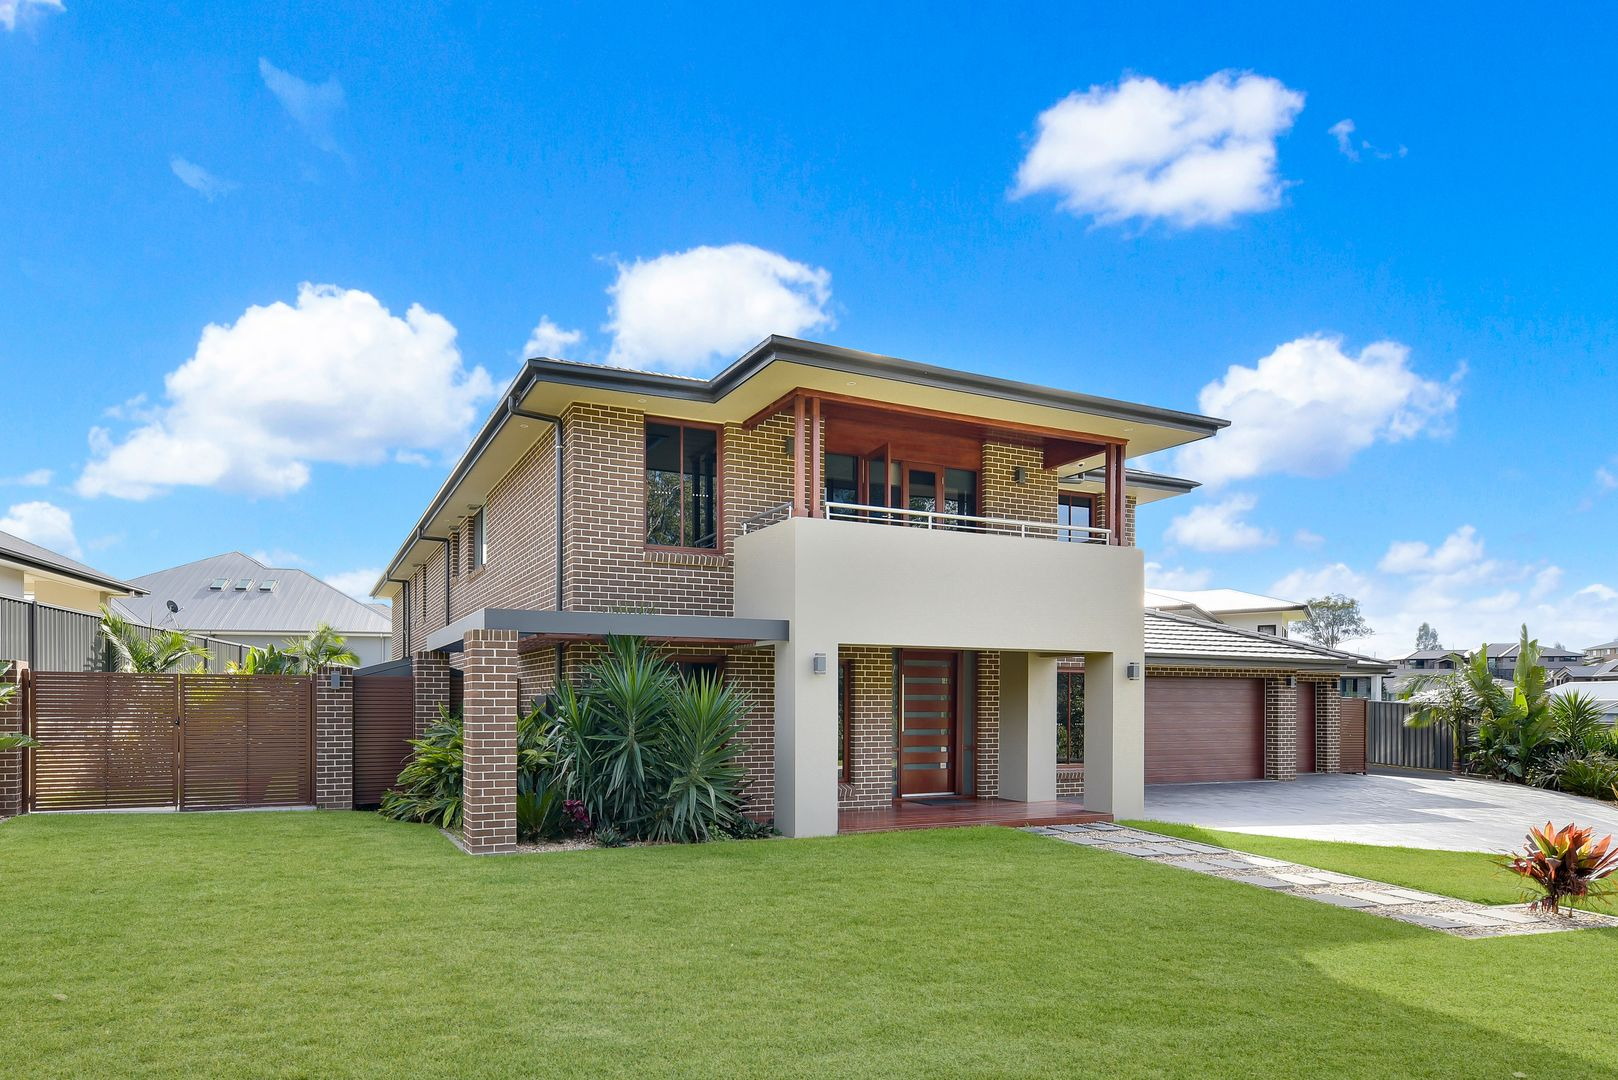 21 Dalton Terrace, Harrington Park NSW 2567, Image 0